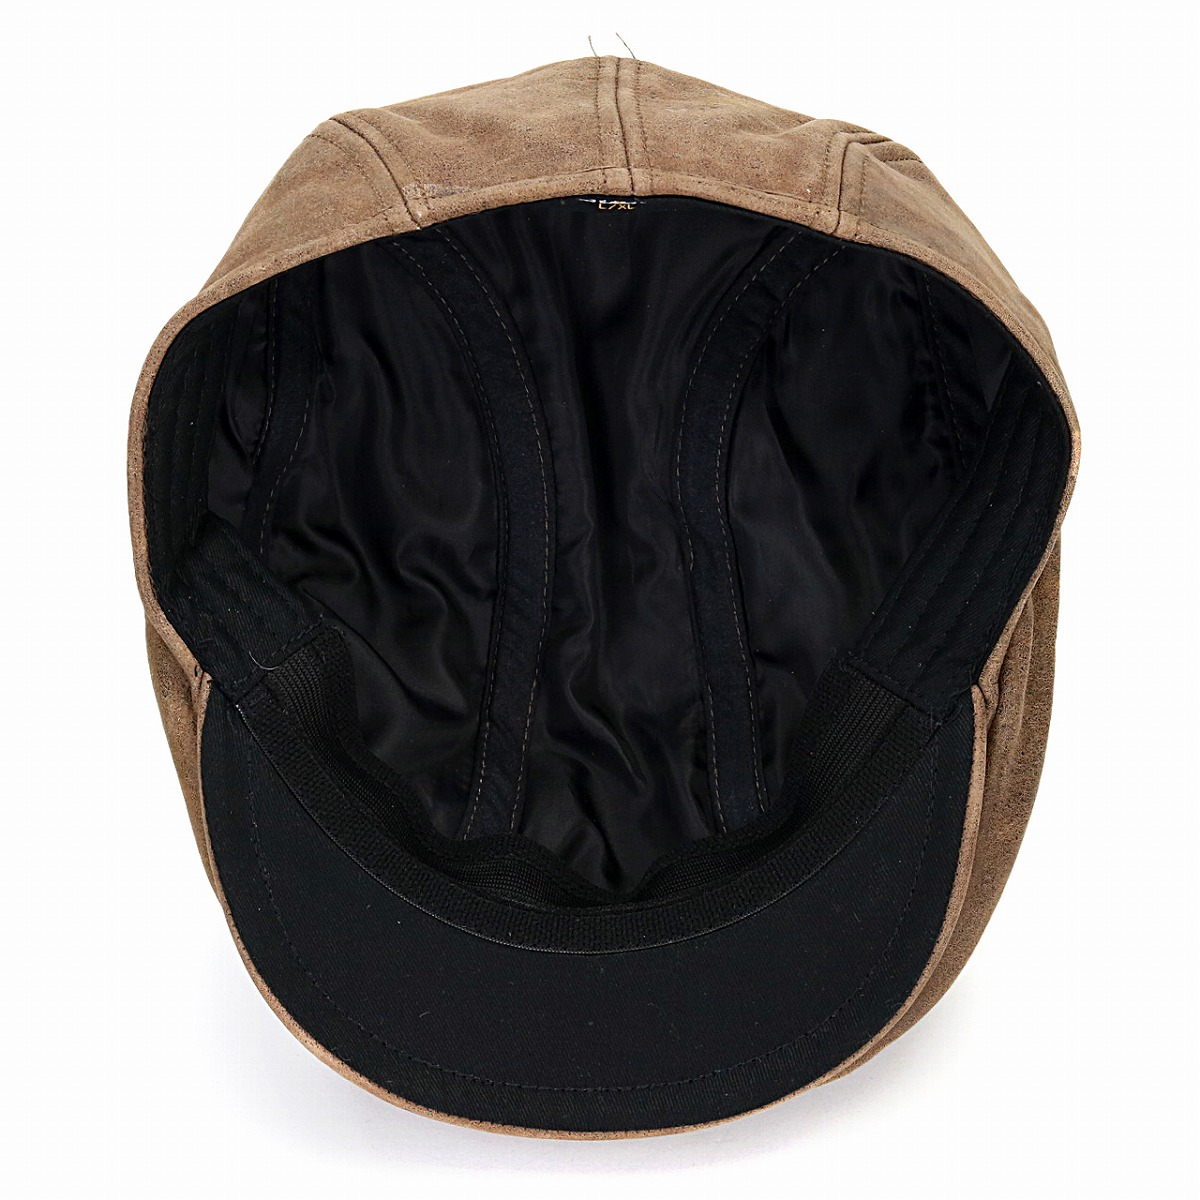 ELEHELM HAT STORE  It is a leather hunting cap for 60 generations ... 226a398fda4d